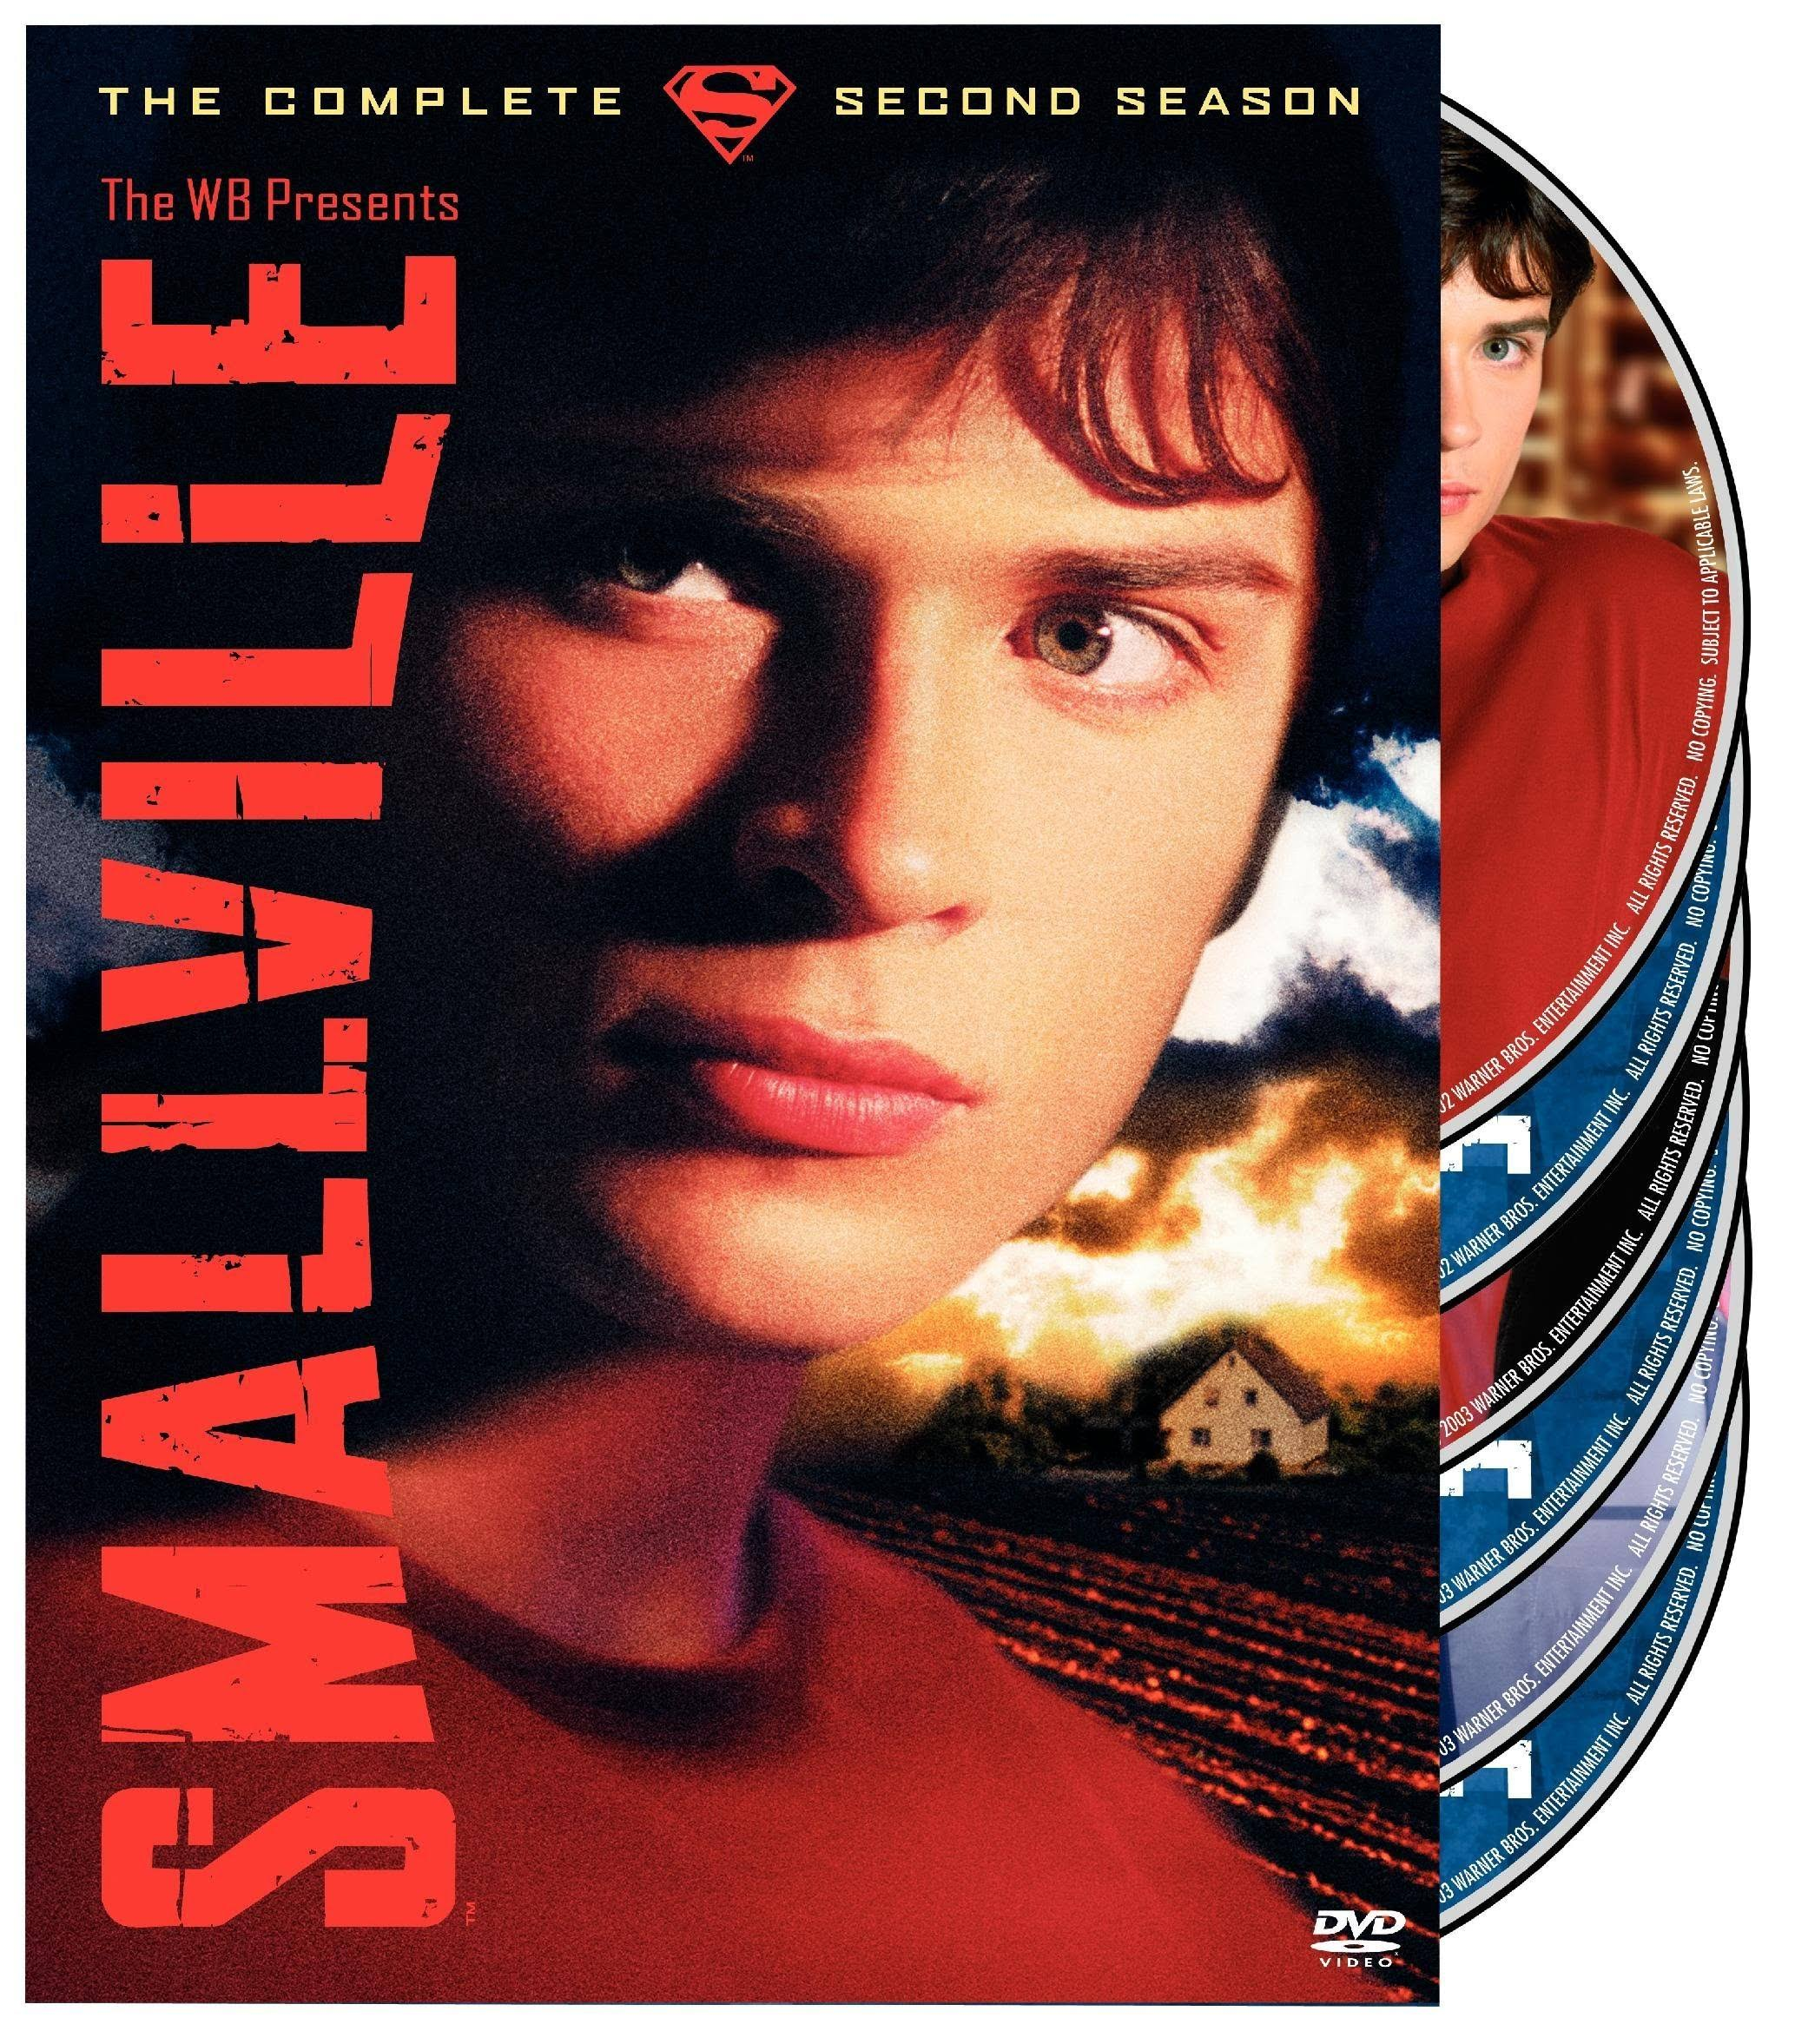 Smallville: The Complete Second Season DVD